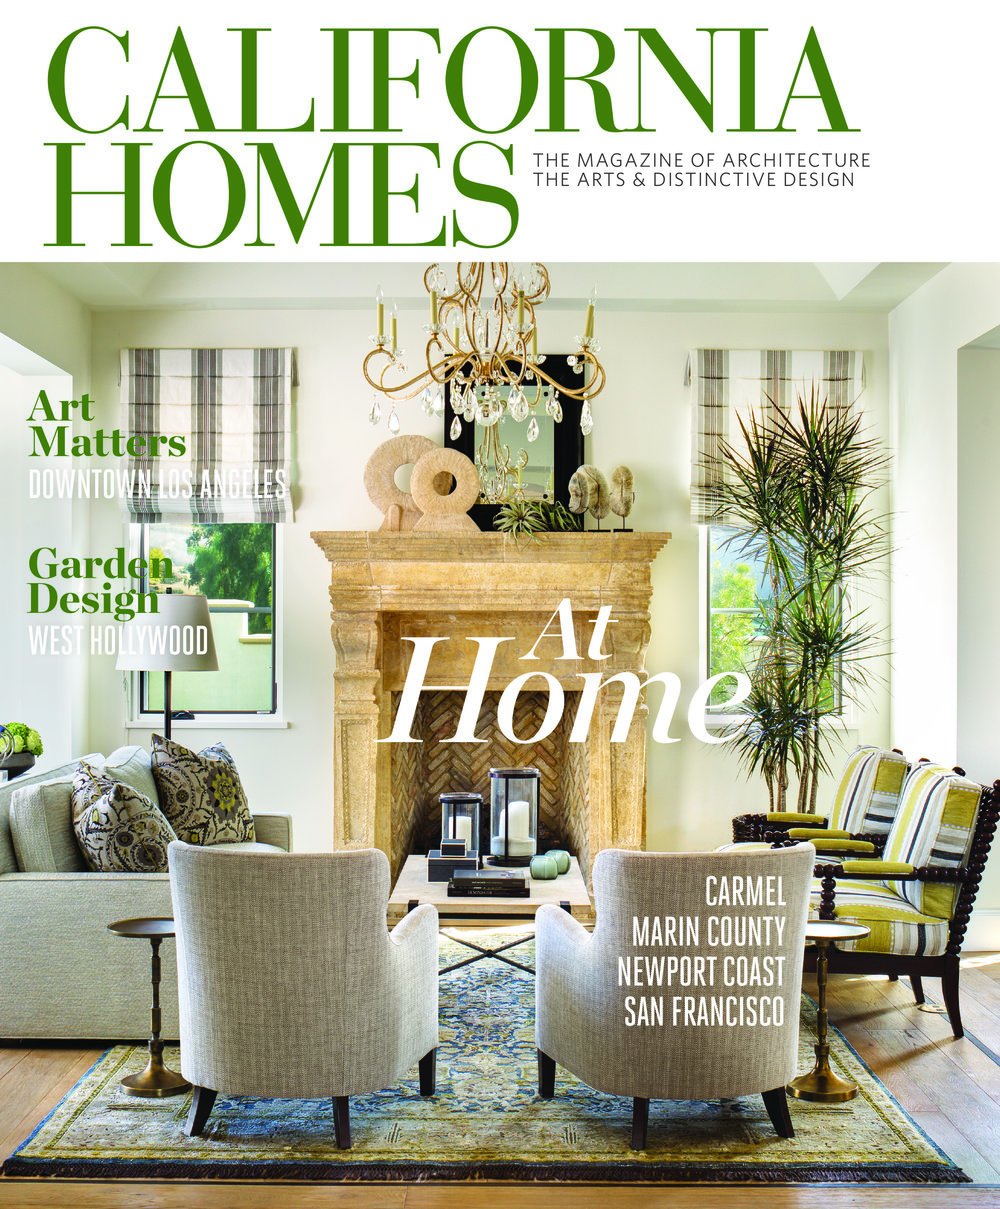 California Homes 1 Cover.jpg